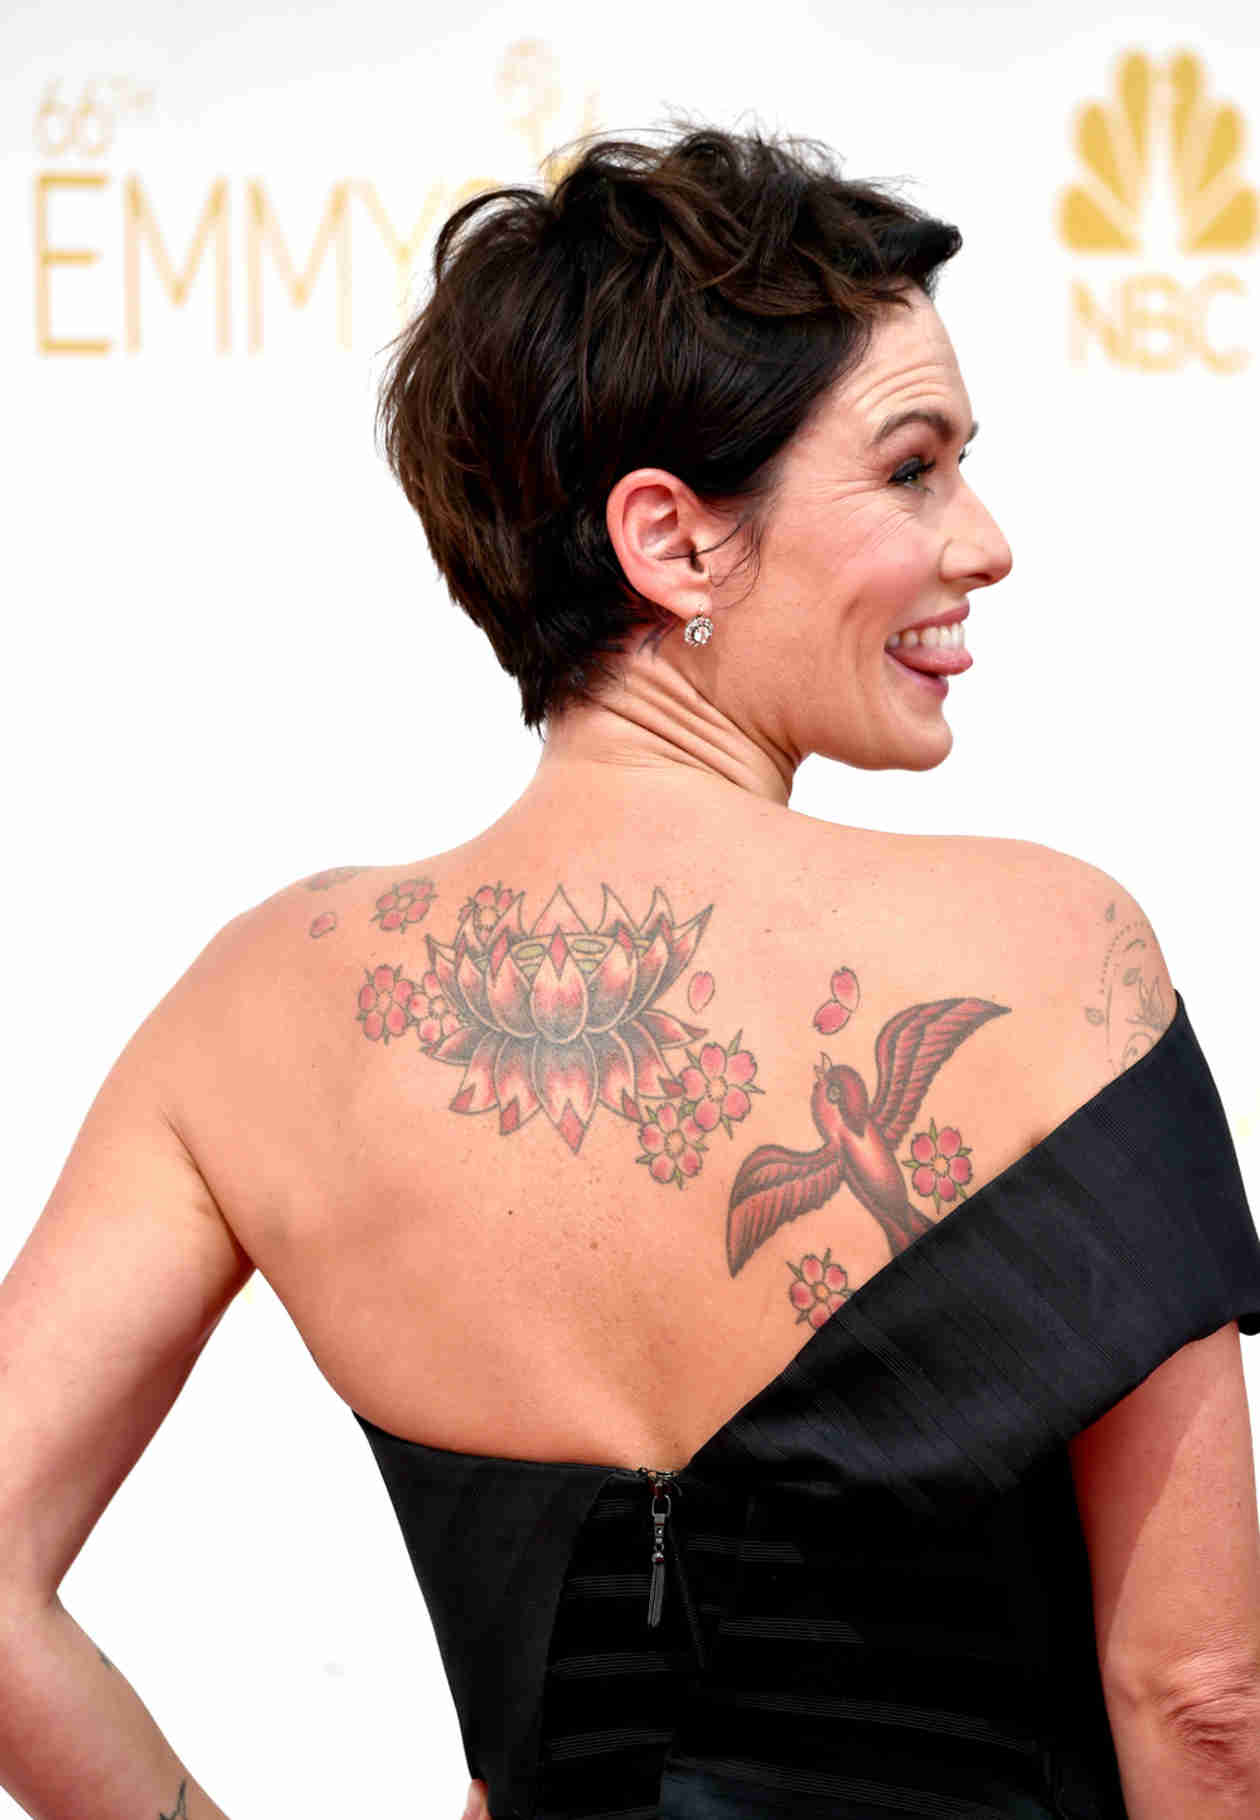 Cersei Has Tattoos?! Check Out Lena Headey's Ink! (PHOTOS)